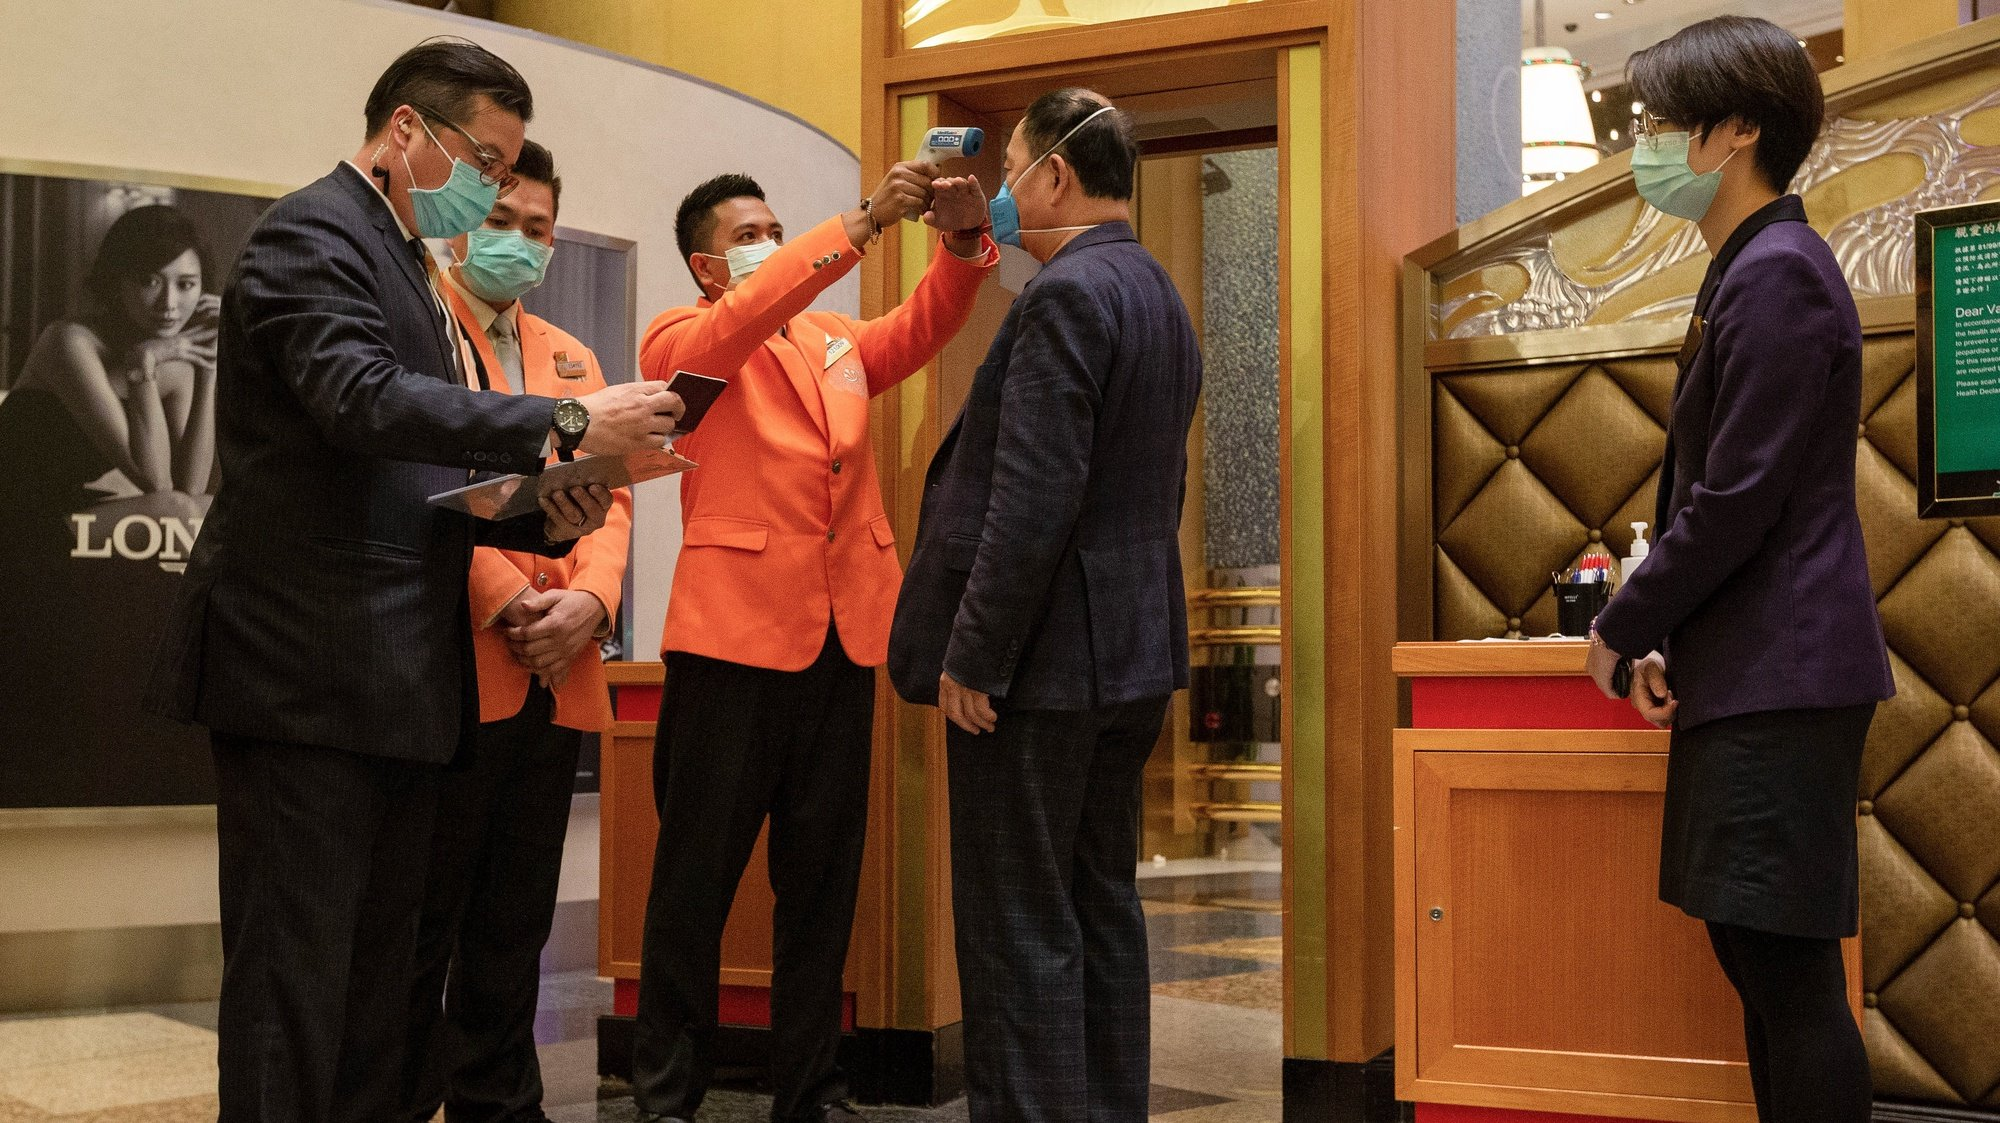 epa08228736 Casino workers workers wearing protective masks check the temperature of a visitor to detect traces of Coronavirus infection, at a Casino in Macao, China, 20 February 2020. Twenty-nine casinos are to reopen starting 20 February, and 12 remain closed, the authorities of the gambling capital said, one of the regions that have identified cases of infection by the coronavirus Covid-19.  After 15 days of closure, Macau's government said on 17 February that the casinos could reopen, giving operators 30 days to return to business.  EPA/CARMO CORREIA